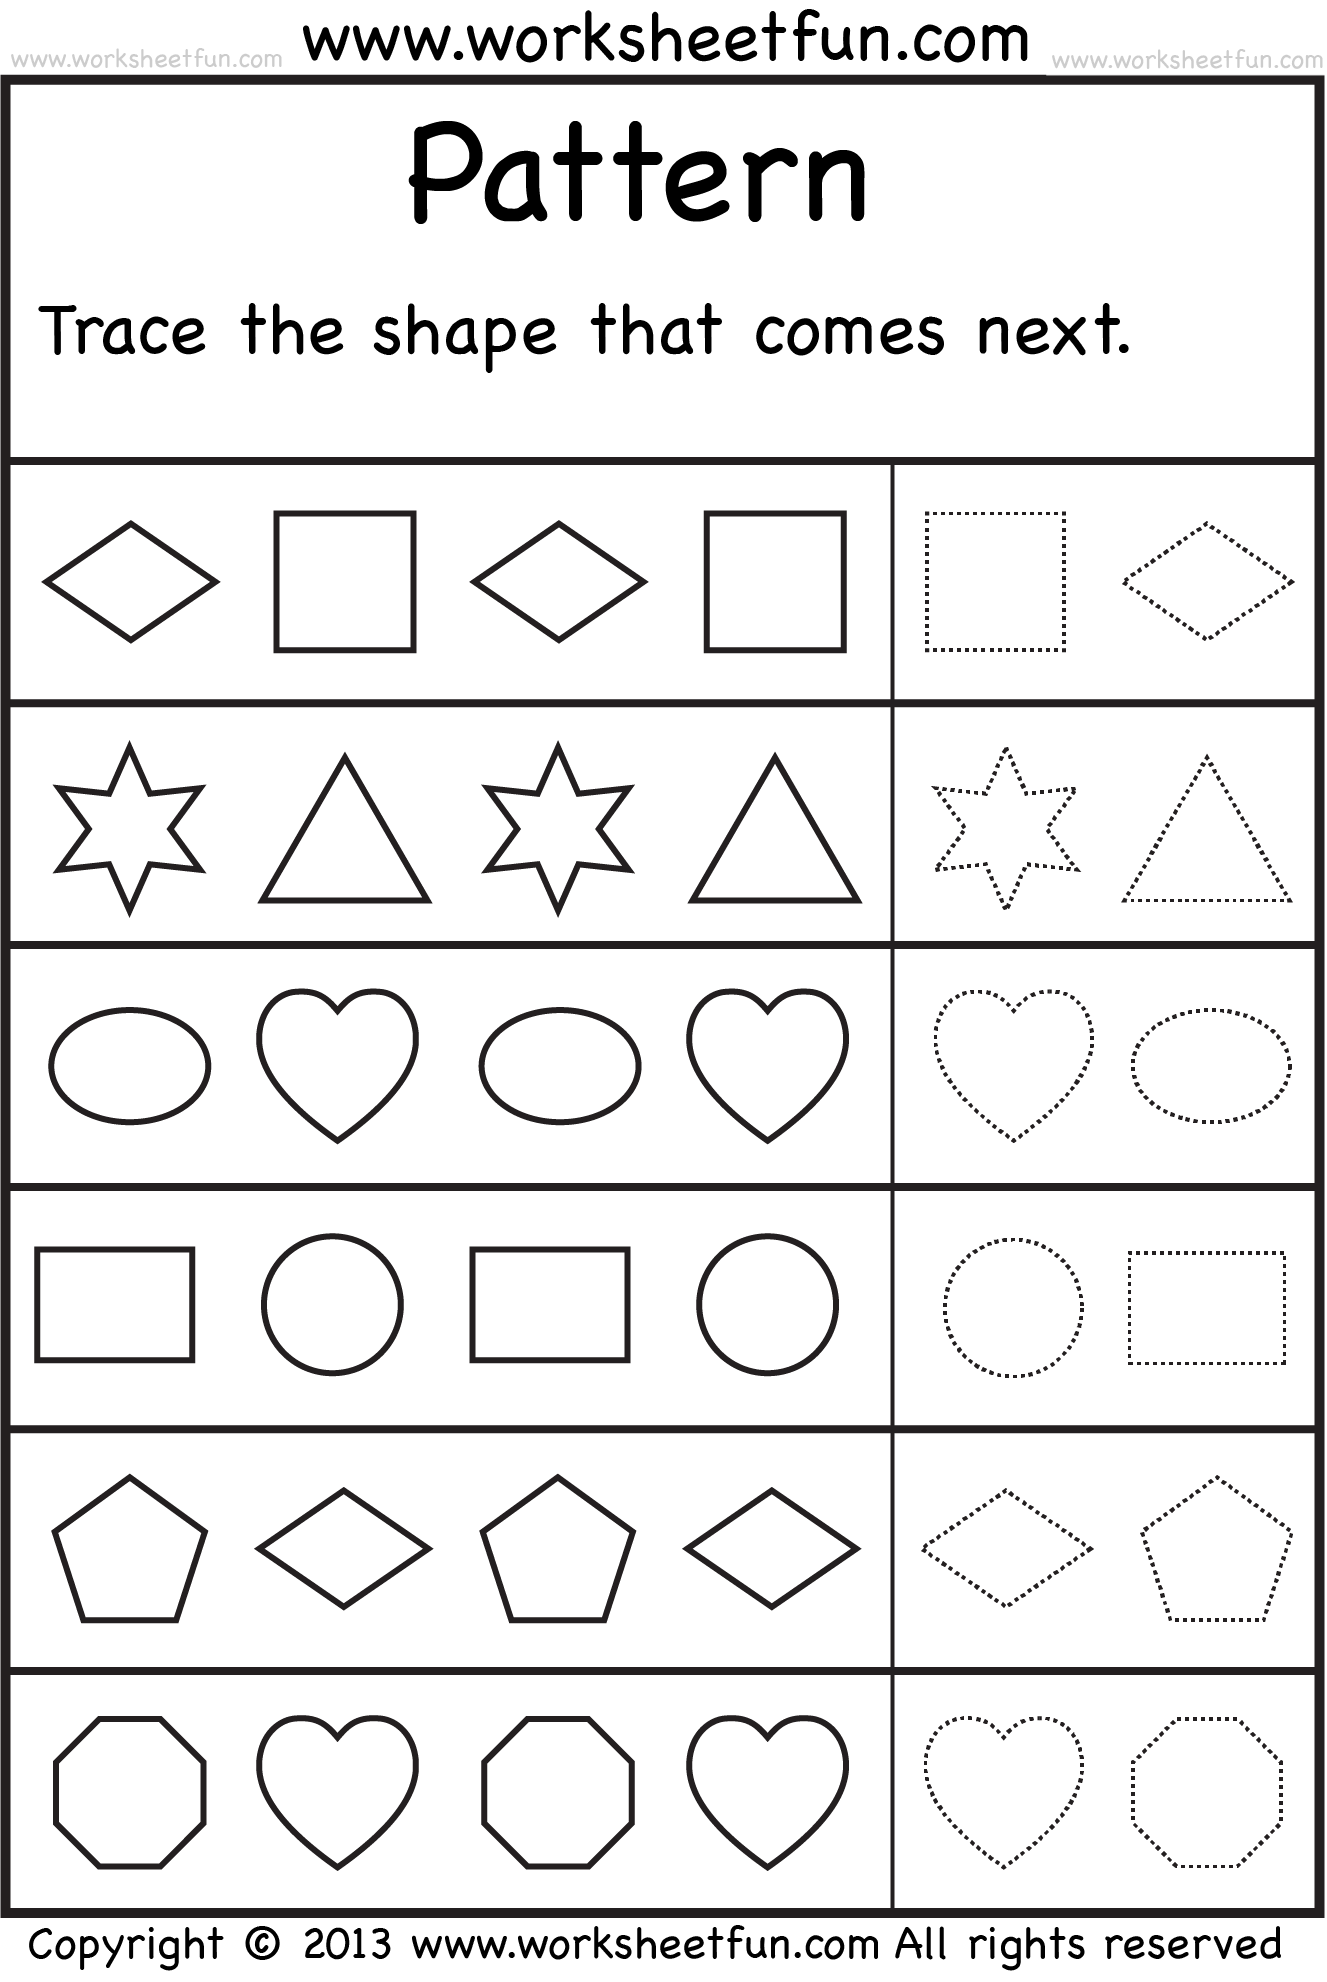 Worksheet Pattern Worksheets For Kindergarten Printable free pattern worksheets for kindergarten scalien